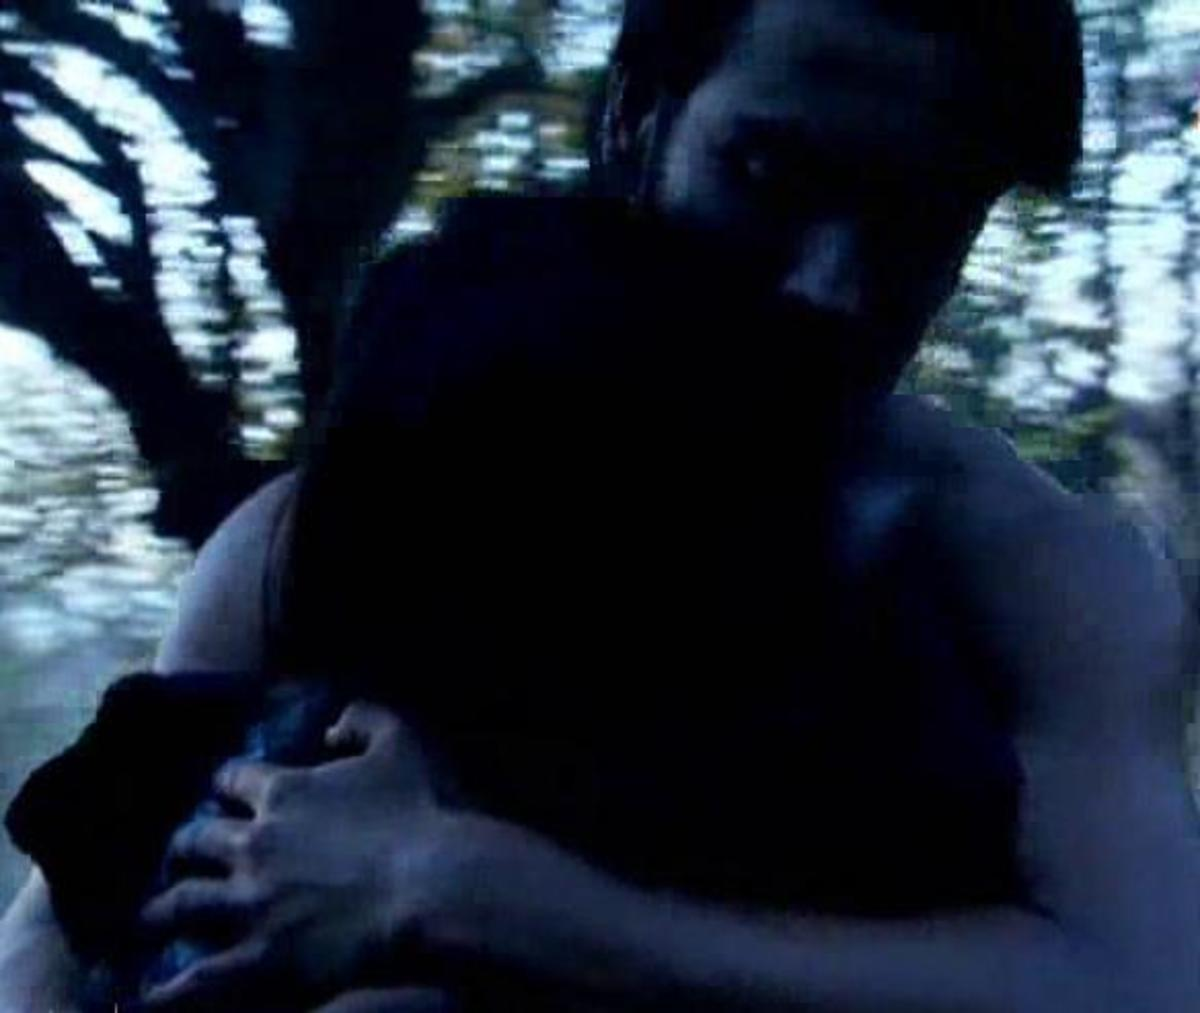 Abhay hugging Piya shirtless to save her life